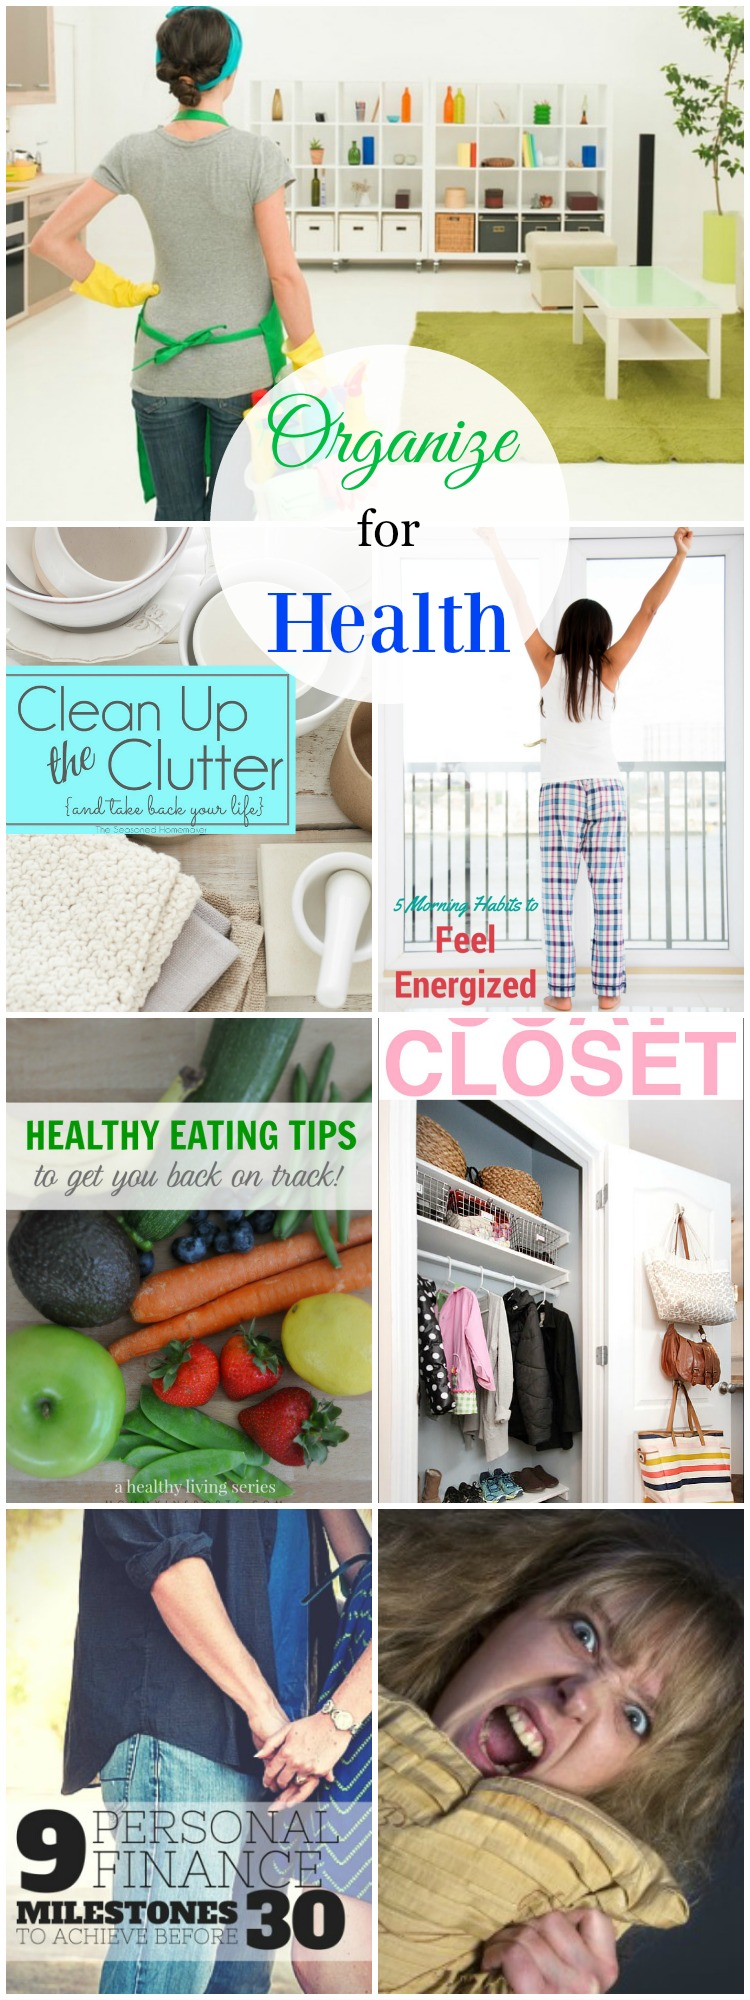 Tips to Organize for Health in 2016 so that your family can live a joyful life